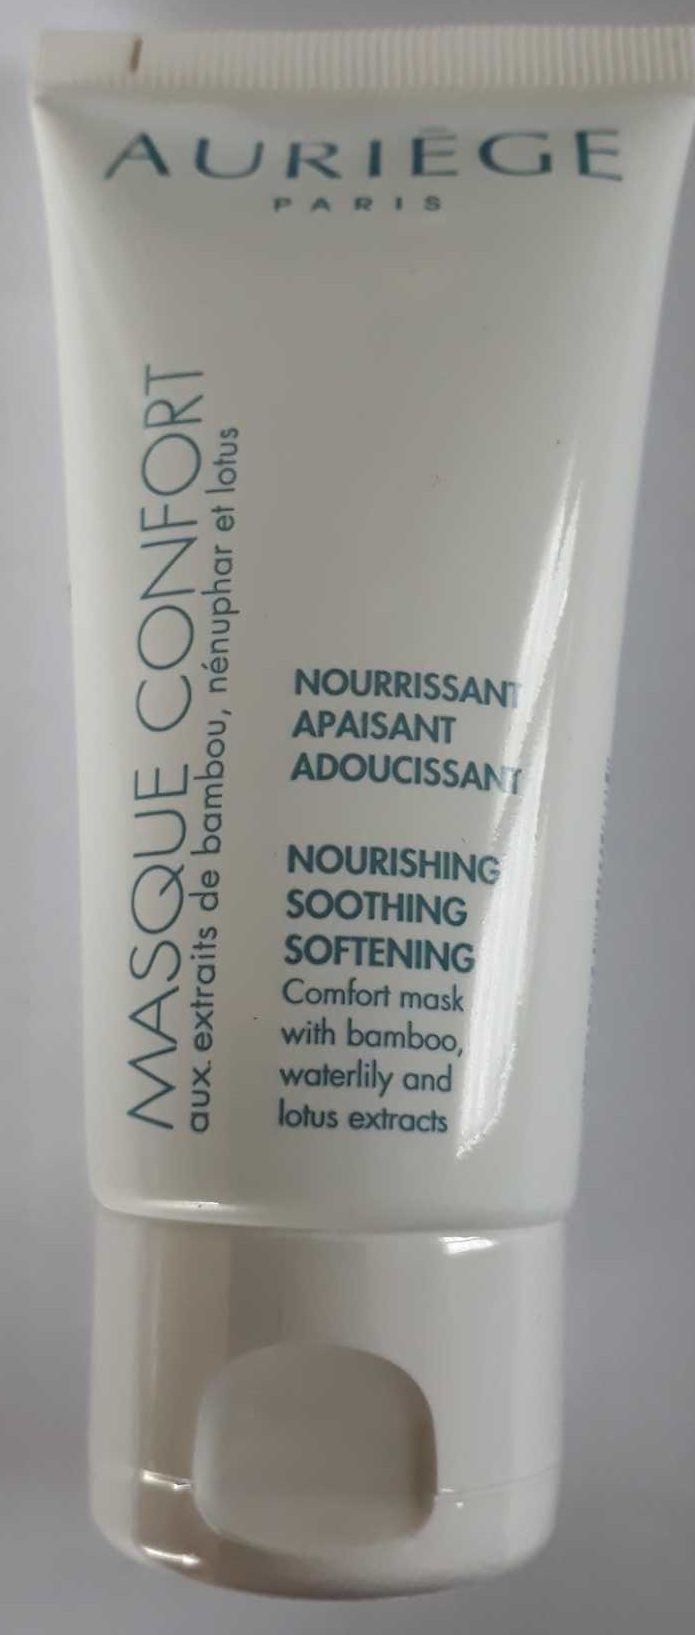 Masque confort - Product